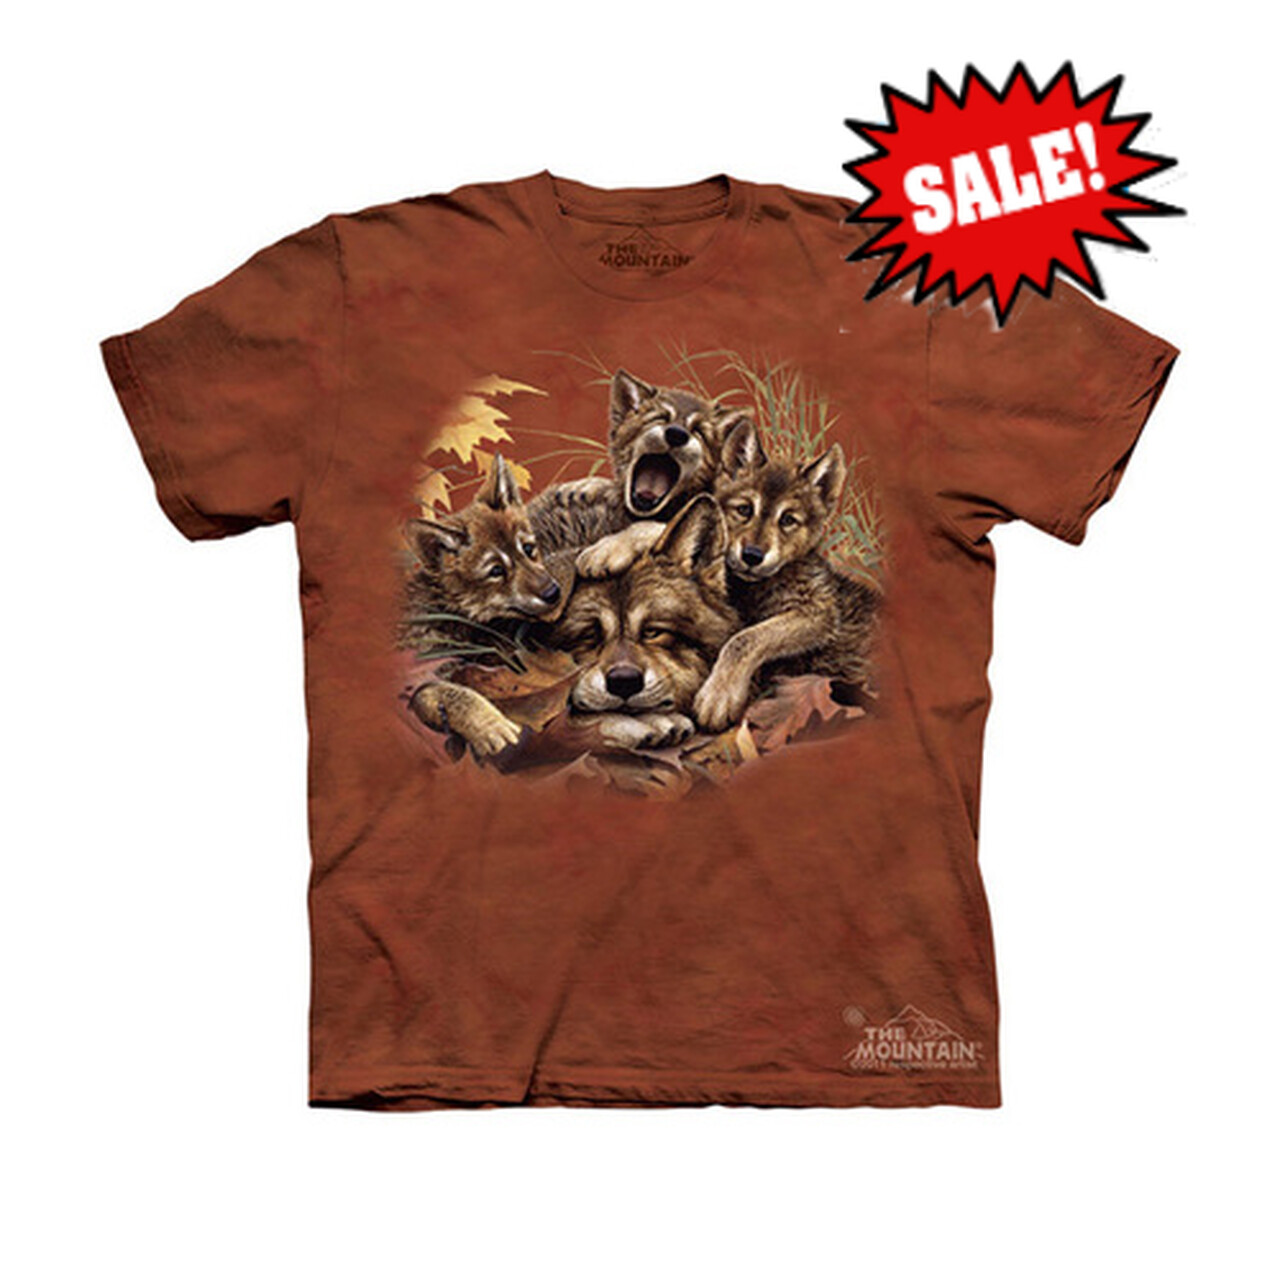 Clearance Kids T Shirt Rise N' Shine